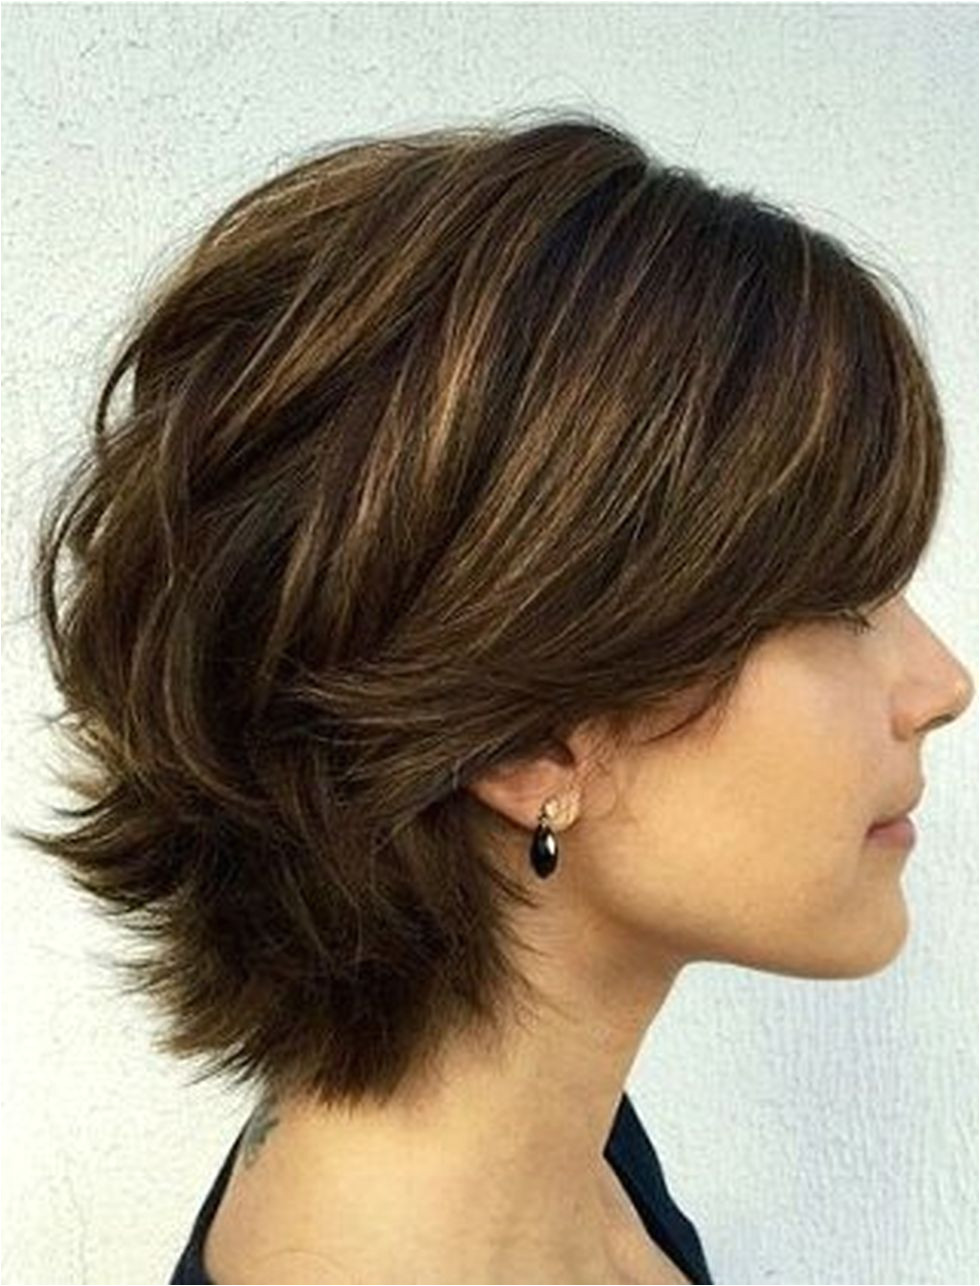 70 Fabulous Over 50 Short Hairstyle Ideas Short Thick Hairstyles Short Haircut Thick Hair